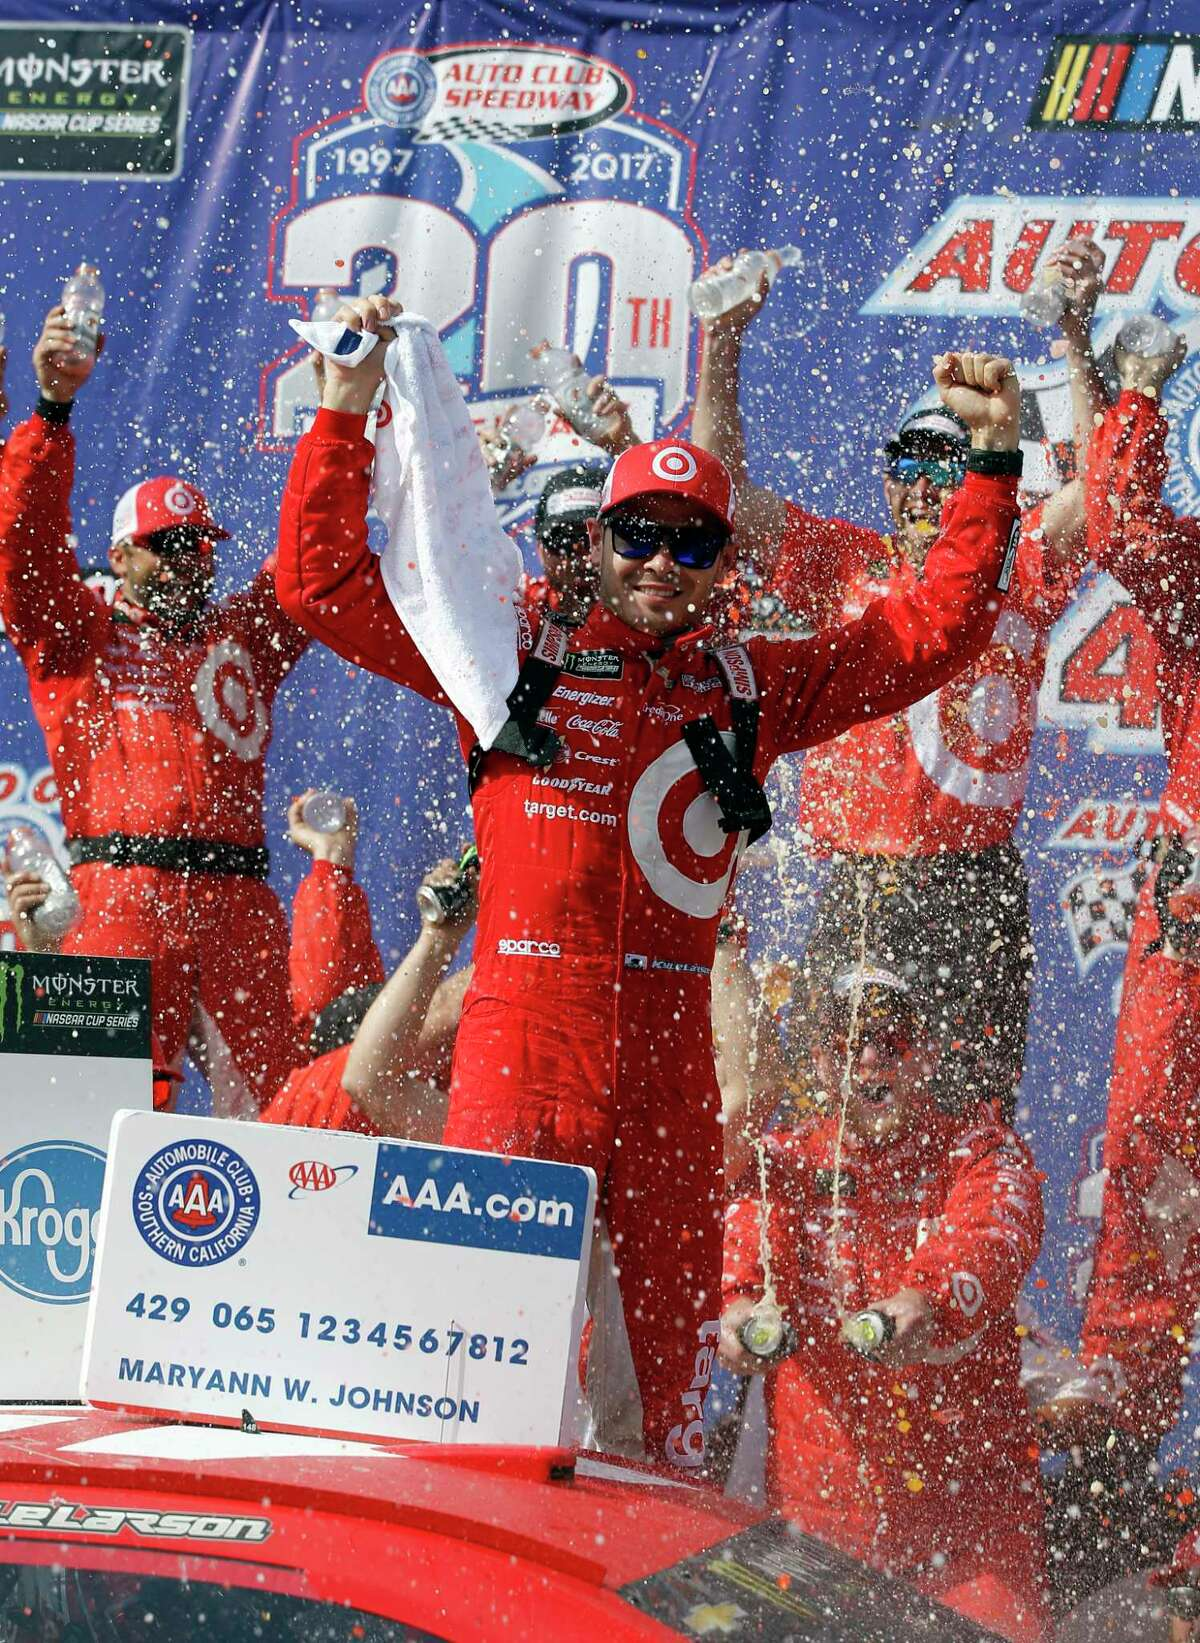 Kyle Larson celebrates after winning the NASCAR Cup Series auto race at Auto Club Speedway in Fontana, Calif., Sunday, March 26, 2017. (AP Photo/Alex Gallardo) ORG XMIT: CAAG110